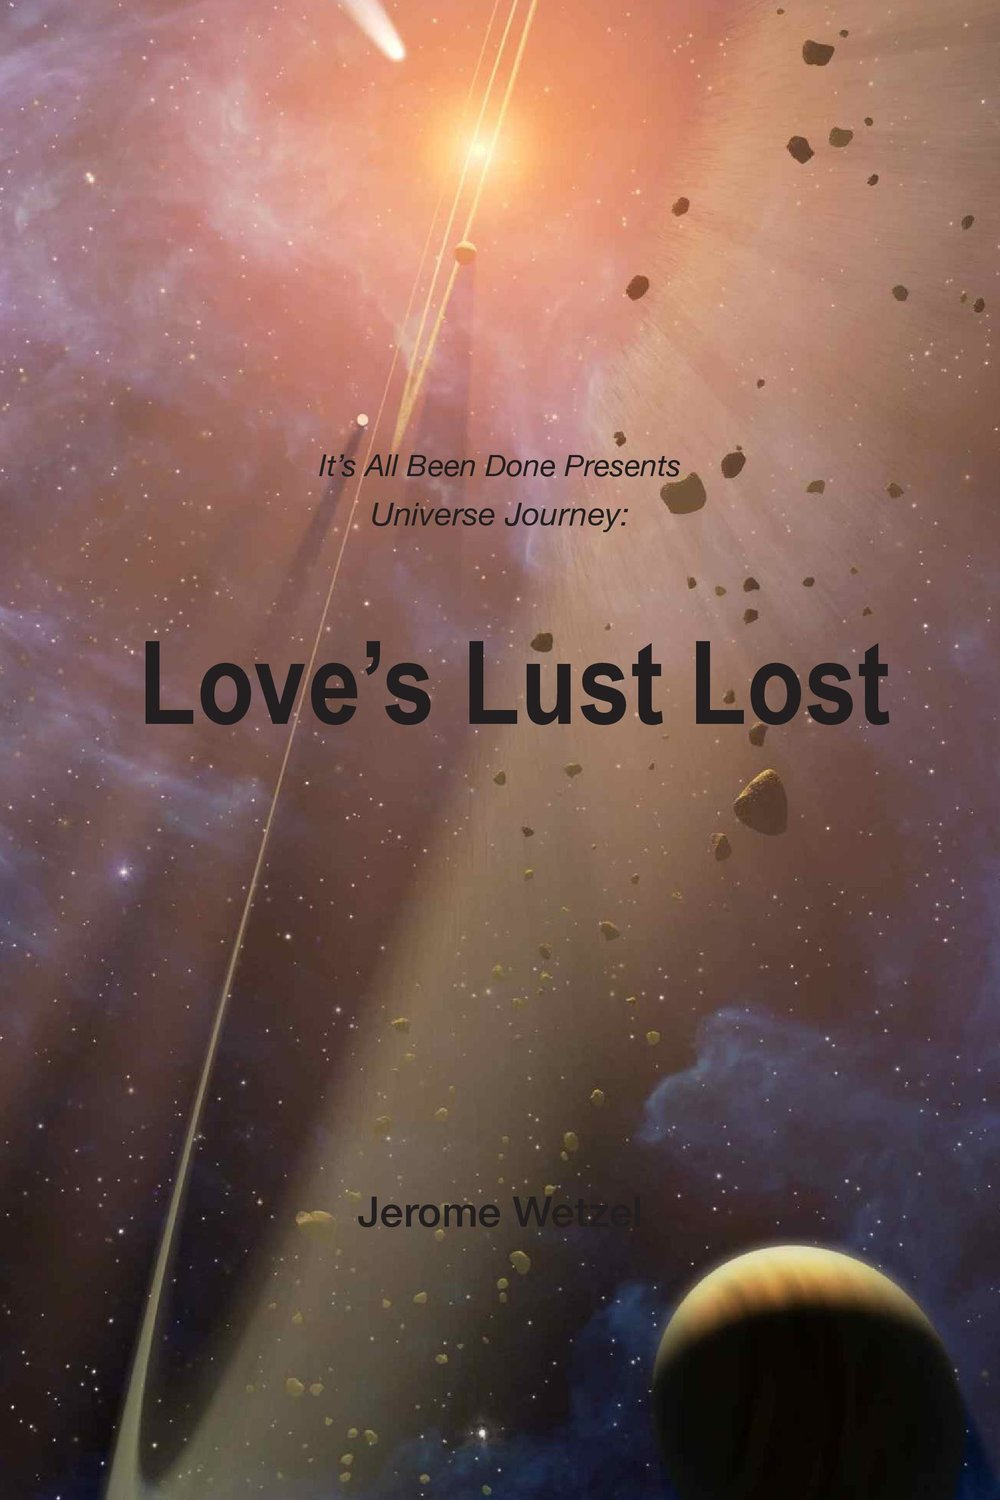 Love's Lust Lost - Captain Richard Kahkay is the bold, brash commander of the A.S.S. Thrifty. But how did he get there? And who is Grace Thomas, a woman from the captain's past? Find out the answers to these questions and more as we join Kahkay on his journey to becoming the leader of the crew.This is a spin-off of the live theatre show and podcast, It's All Been Done Radio Hour. It is an origin story of sorts, so you do not need to be familiar with the voice performance series to enjoy it.